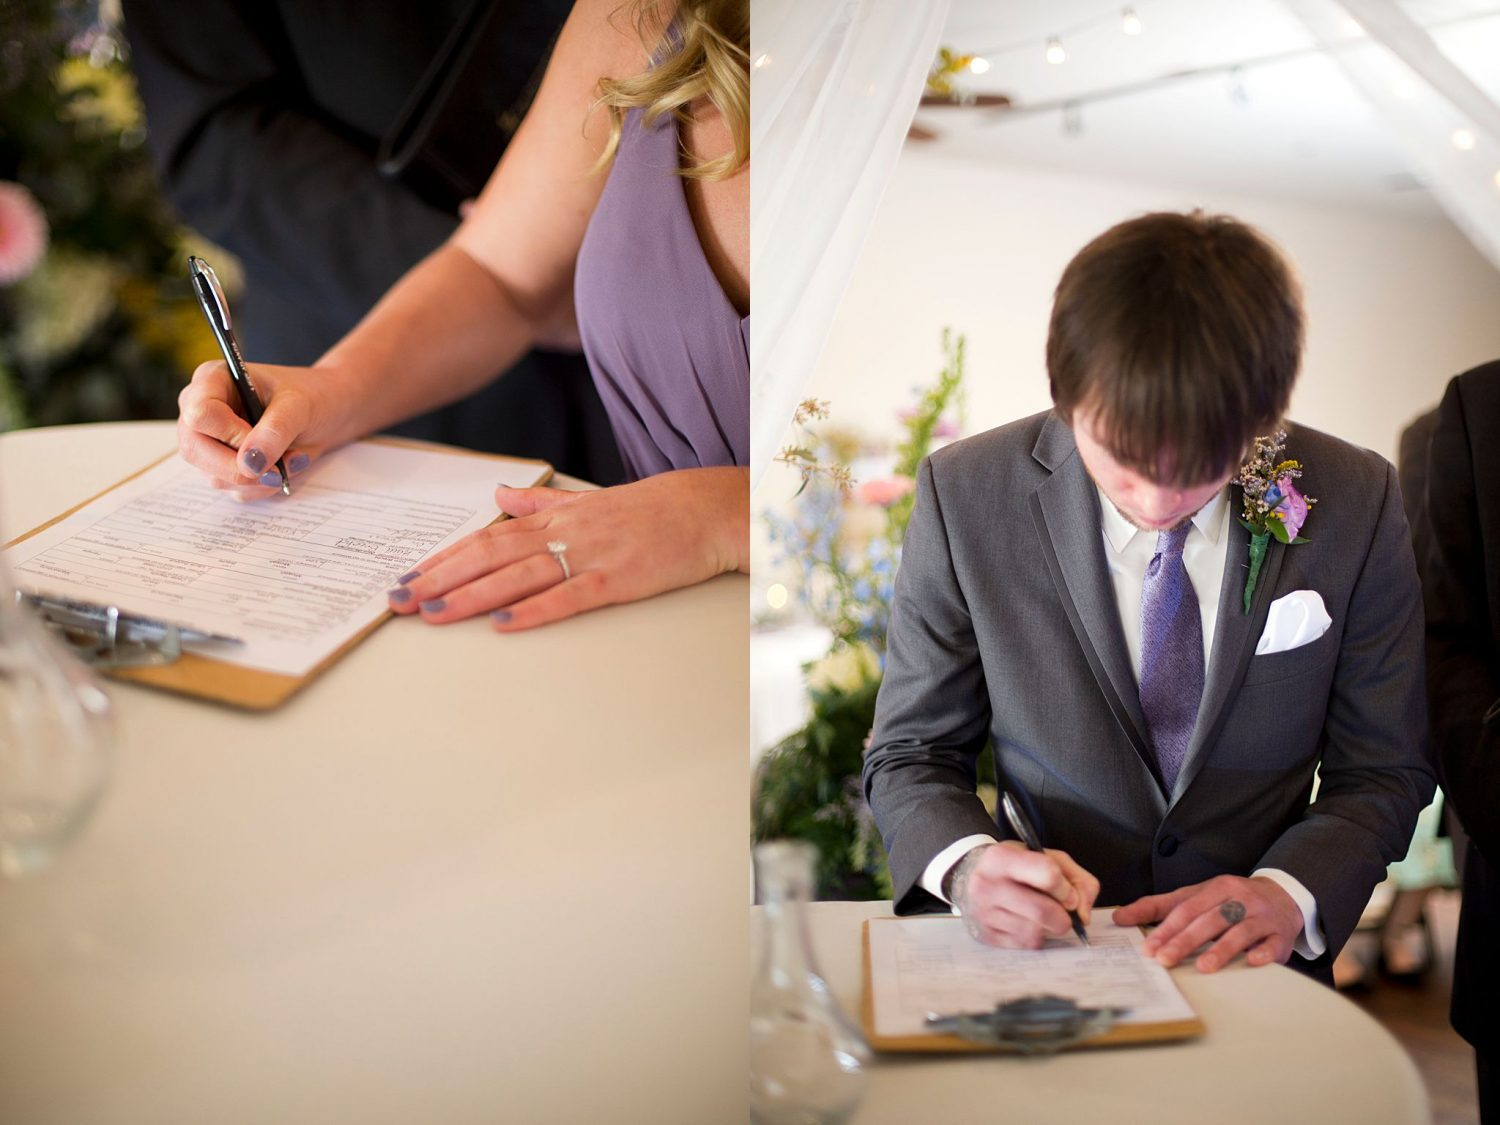 Best man and maid of honor signing the marriage certificate.